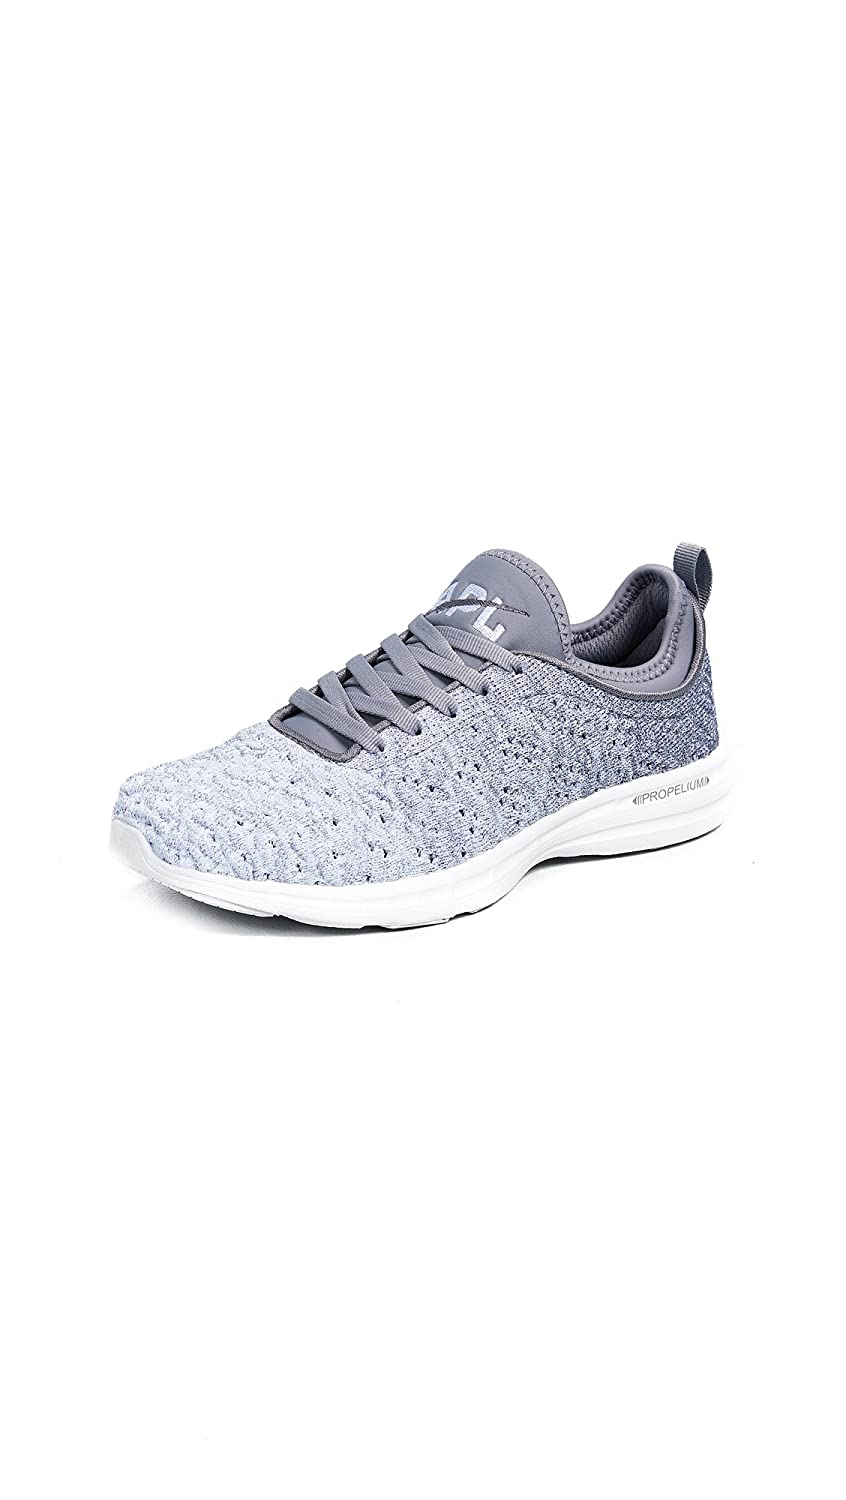 APL: Athletic Propulsion Labs Women's Techloom Phantom Running Shoe B07BH3VVWZ 10 M US|Gunmetal/White Ombre